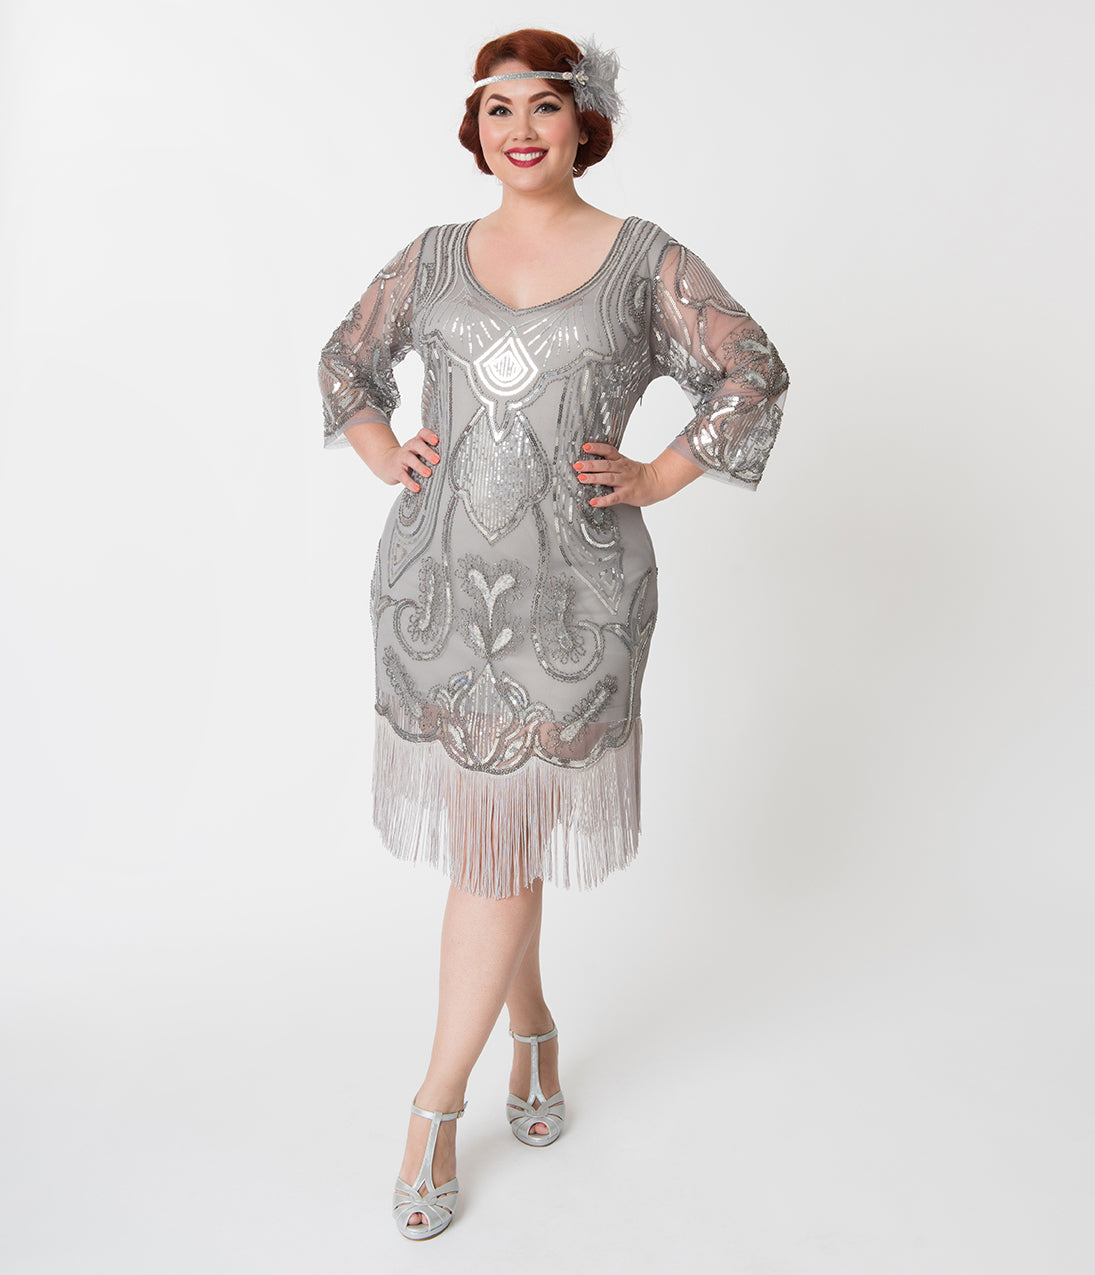 2440d8c9854 Charleston Dress  Fringe Flapper Dress Unique Vintage Plus Size Silver  Sequin Margaux Sleeved Fringe Flapper